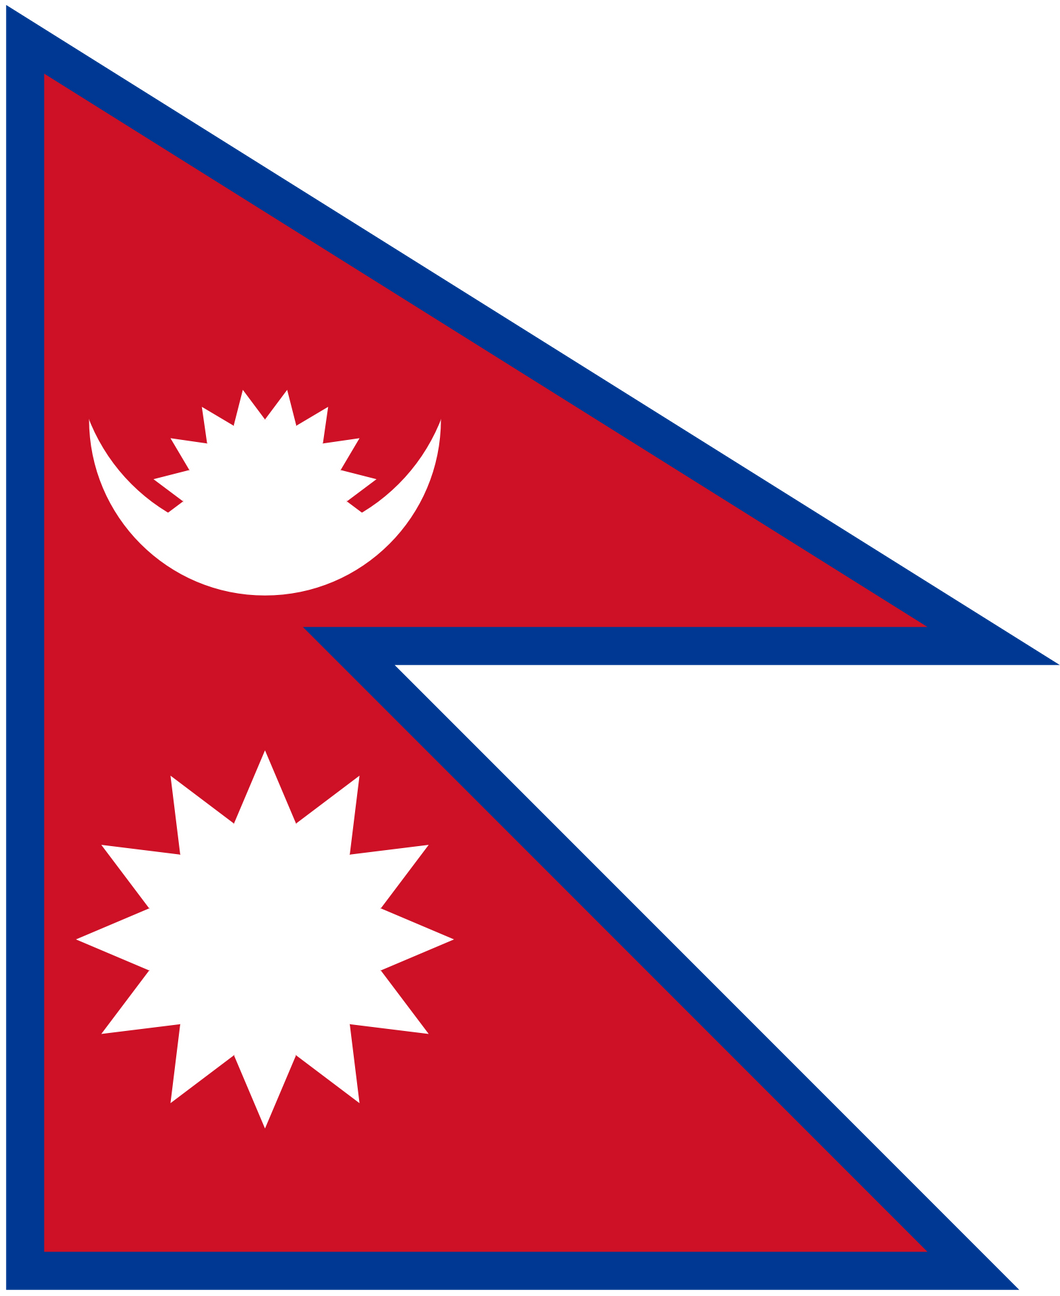 Nepal Flag 3x5ft Poly